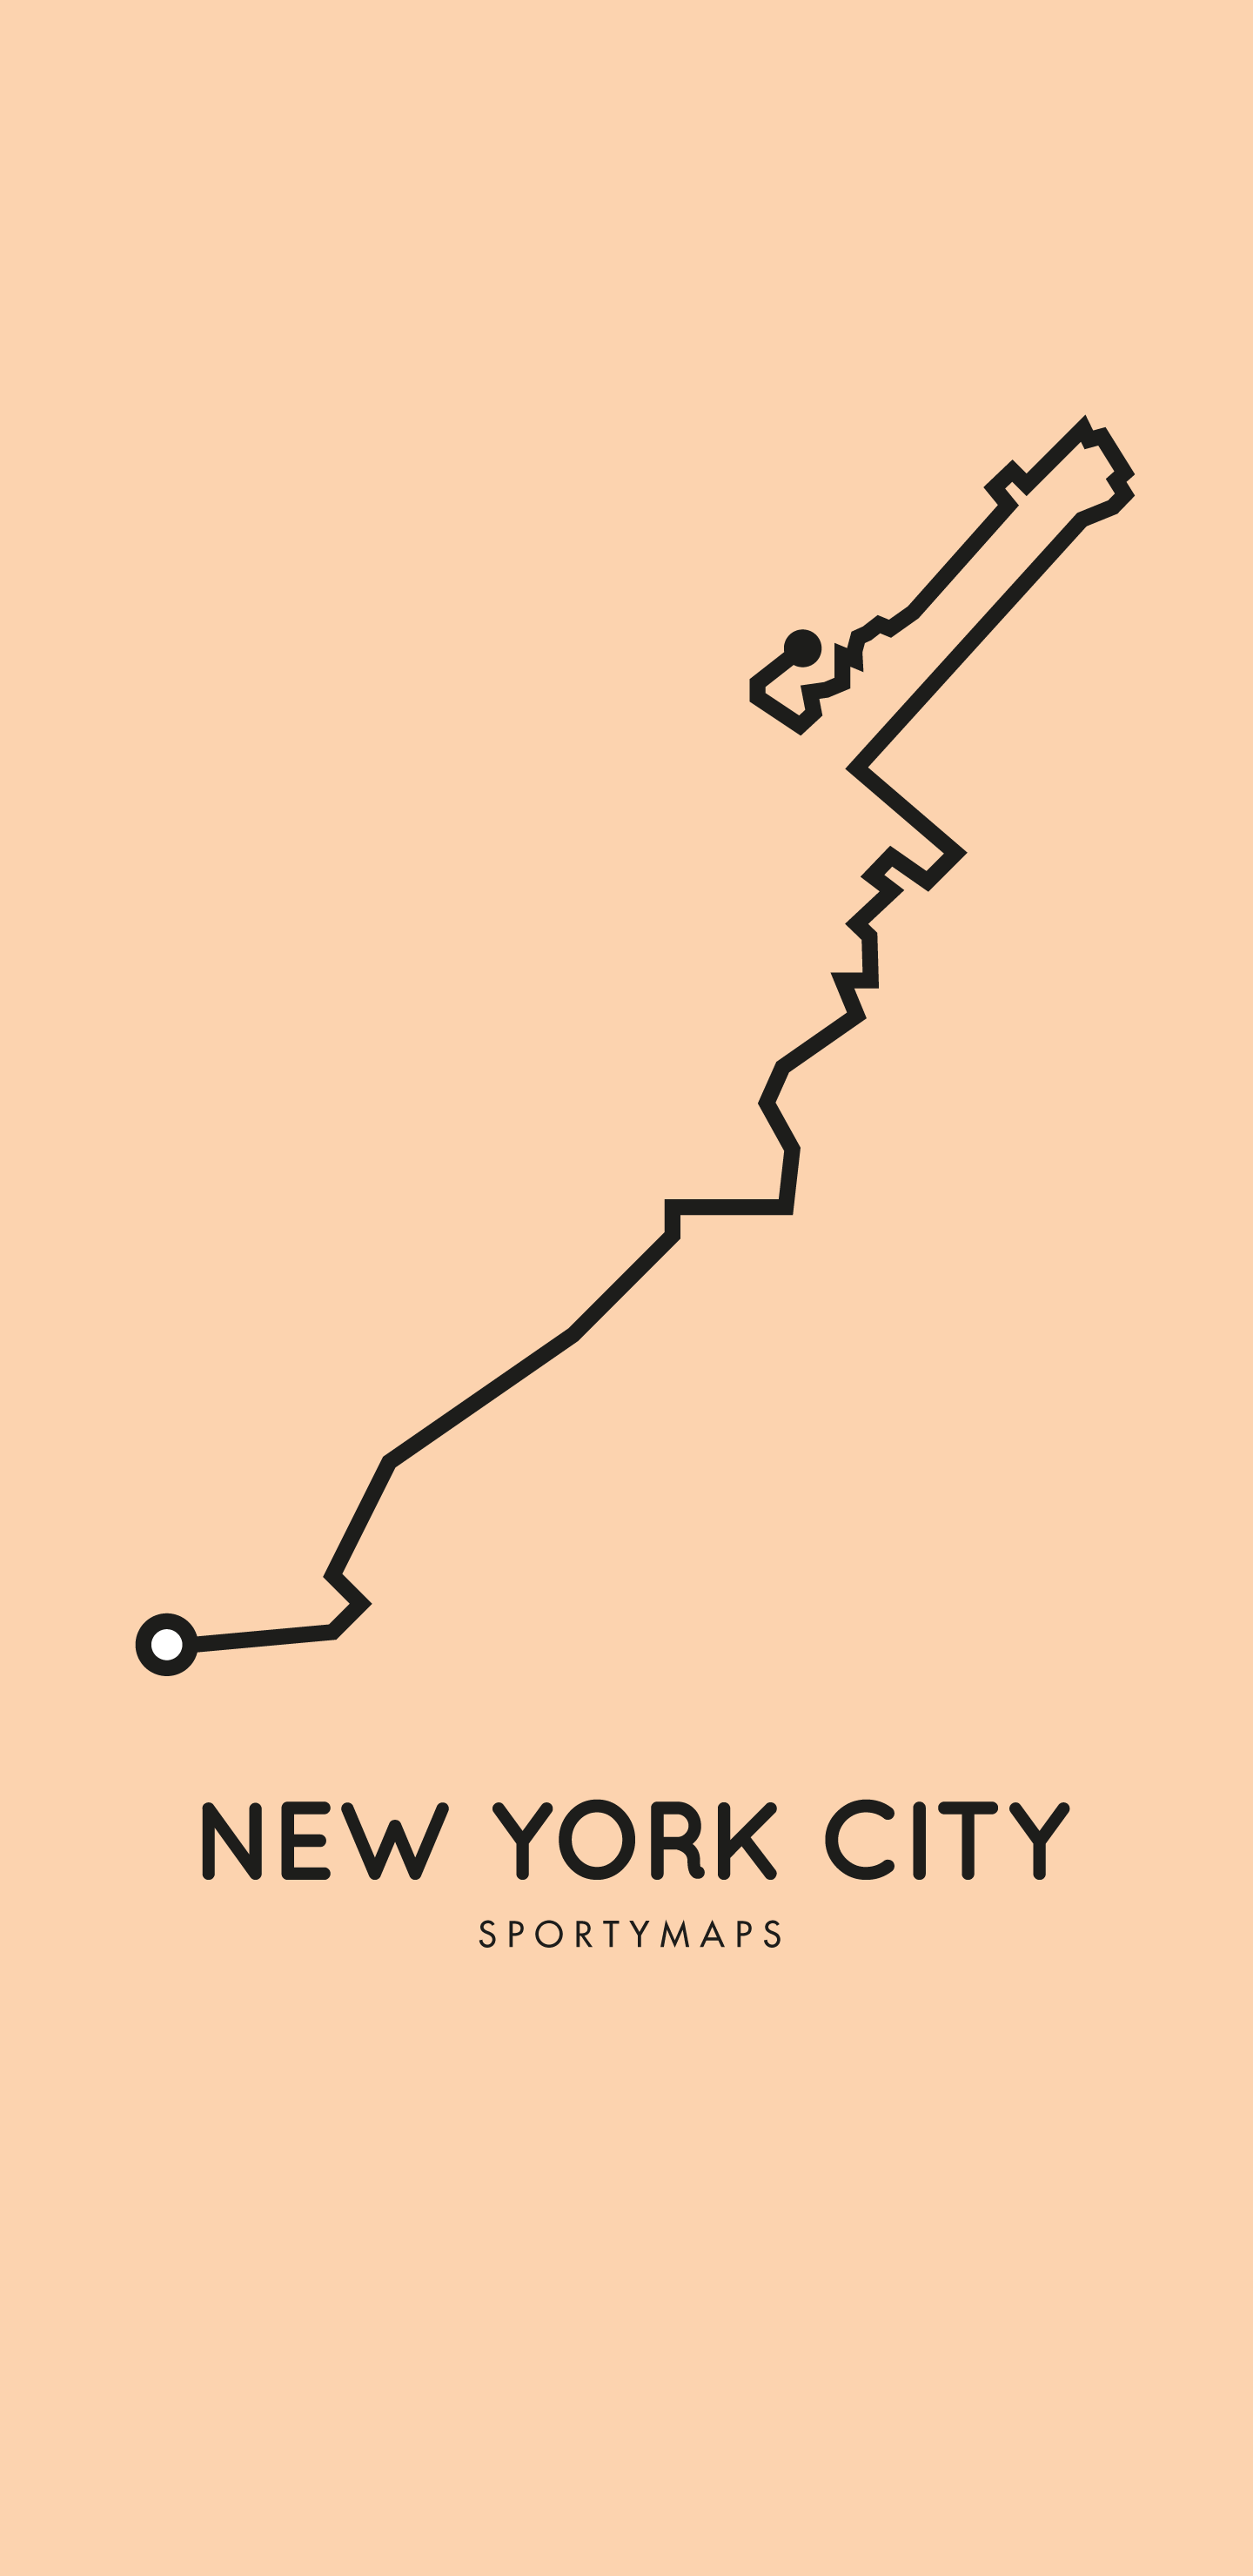 Sportymaps-NYC-marathon-orange